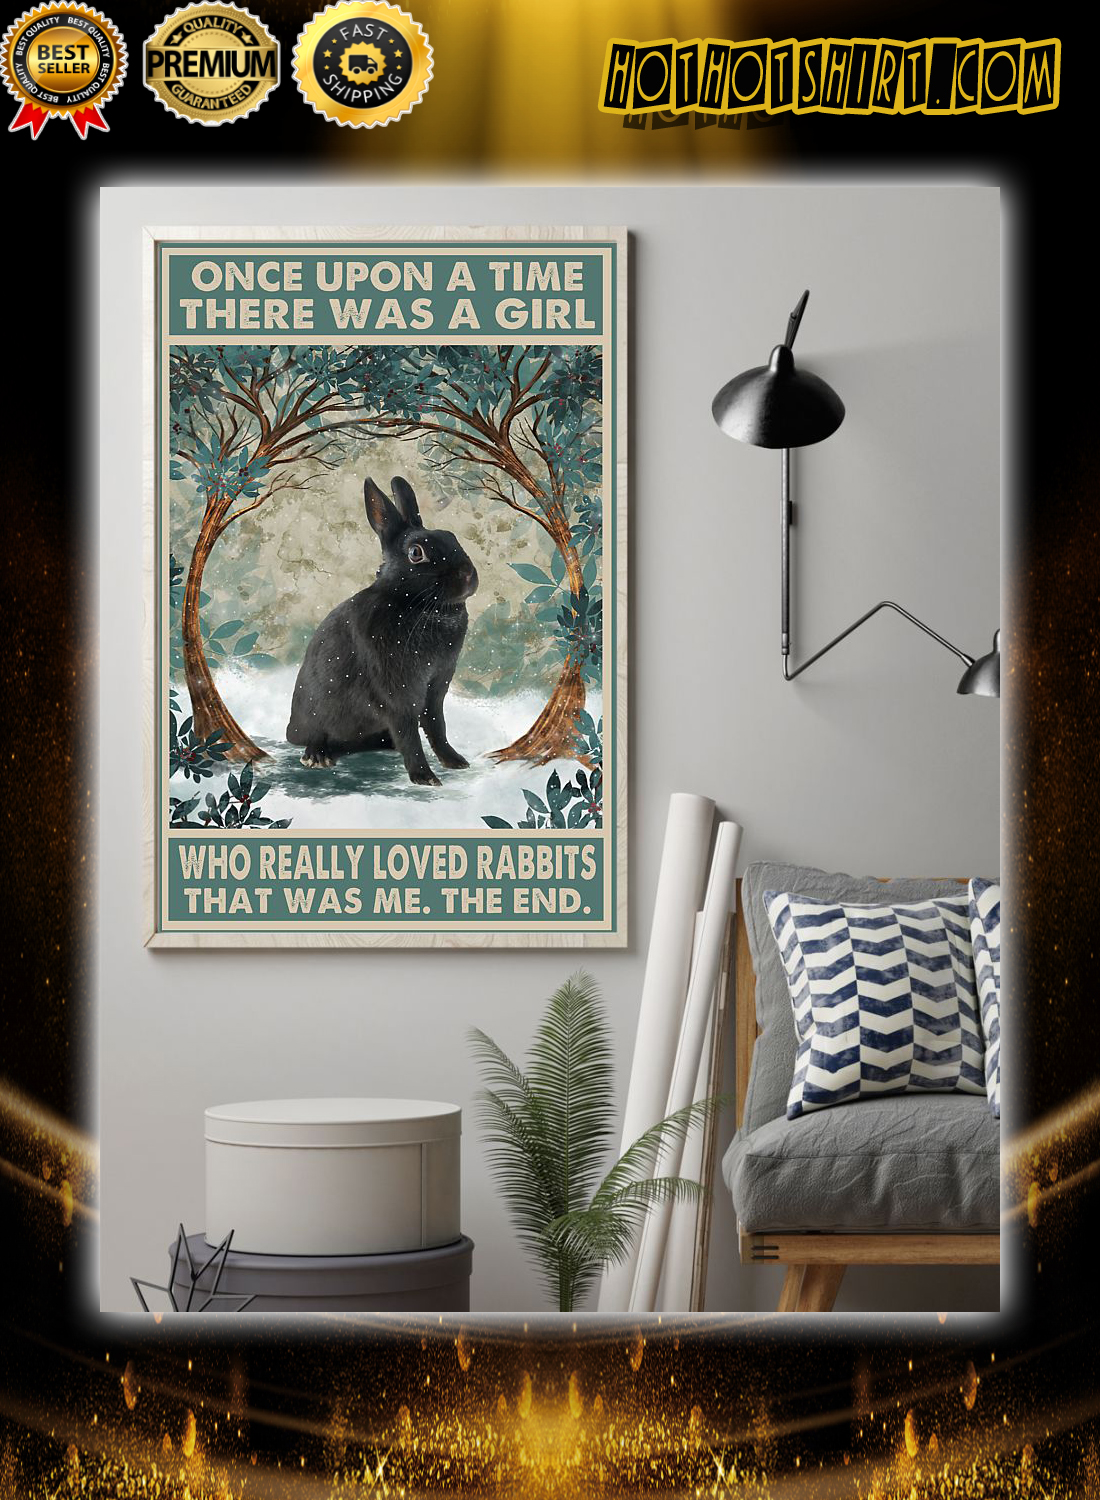 Black rabbit once upon a time there was a girl who really loved rabbits poster